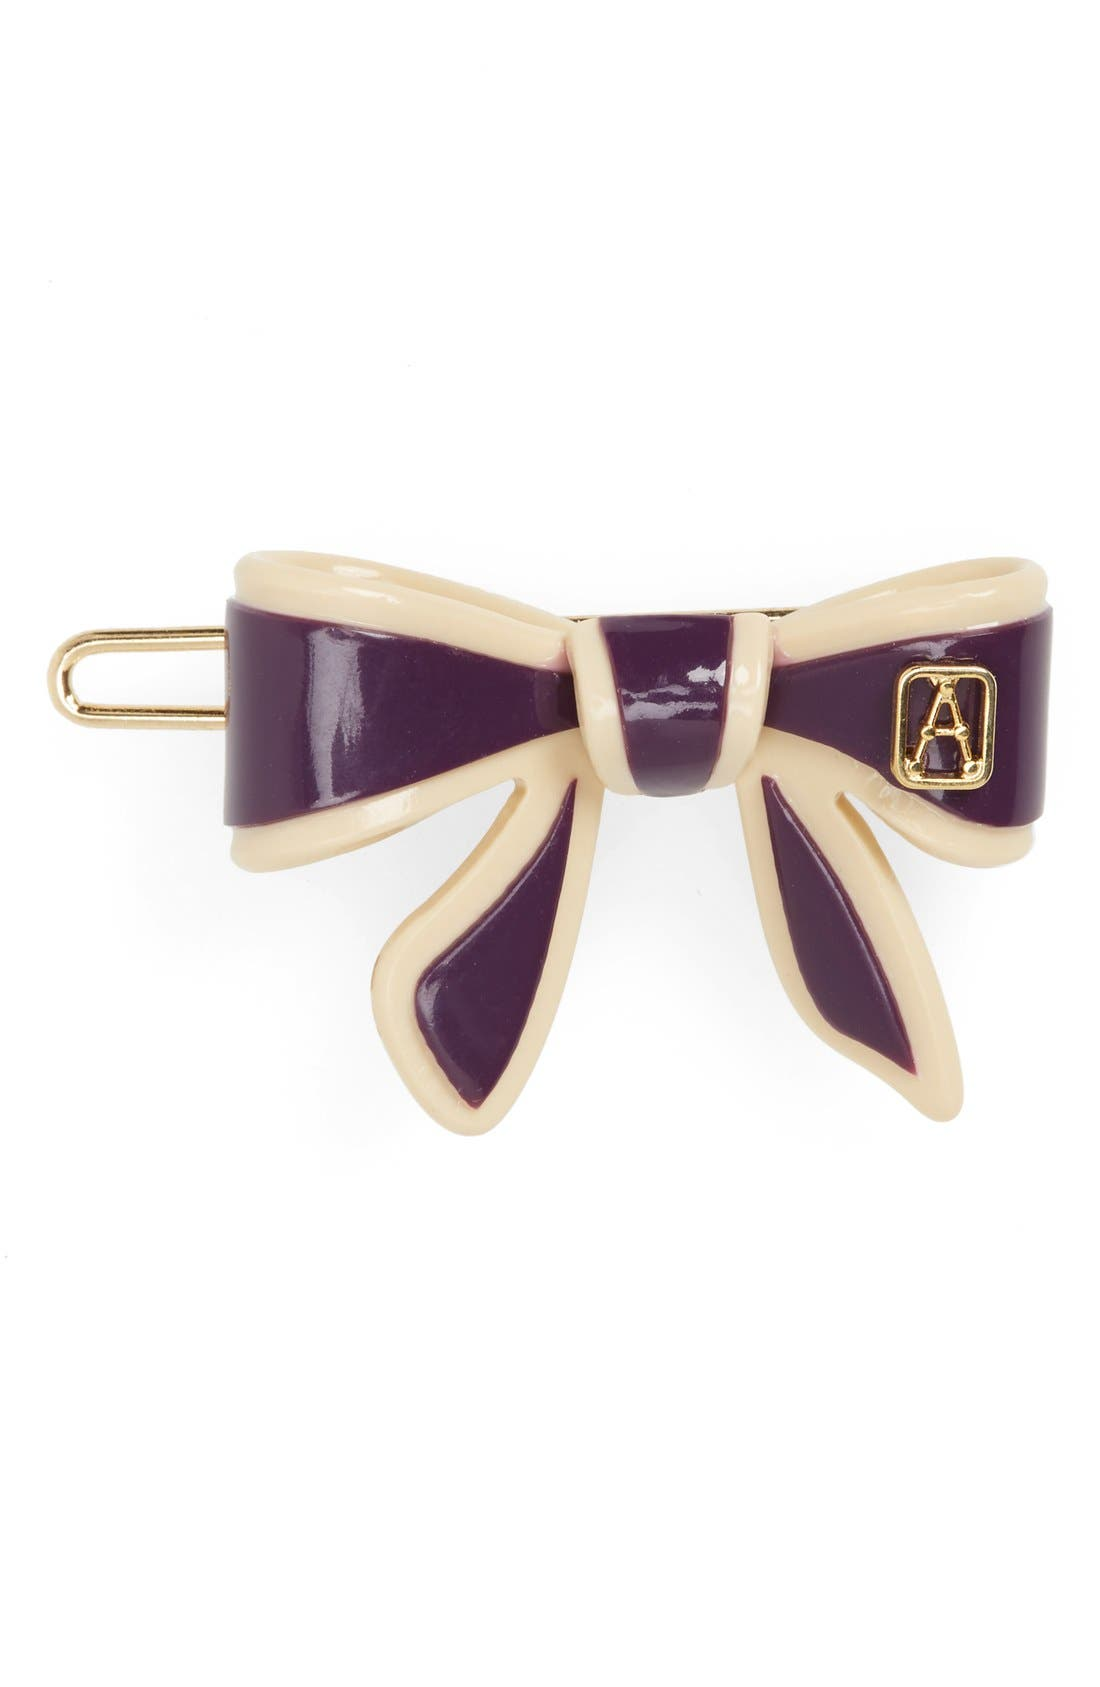 Alexandre de Paris 'Mini Tenderly' Bow Barrette